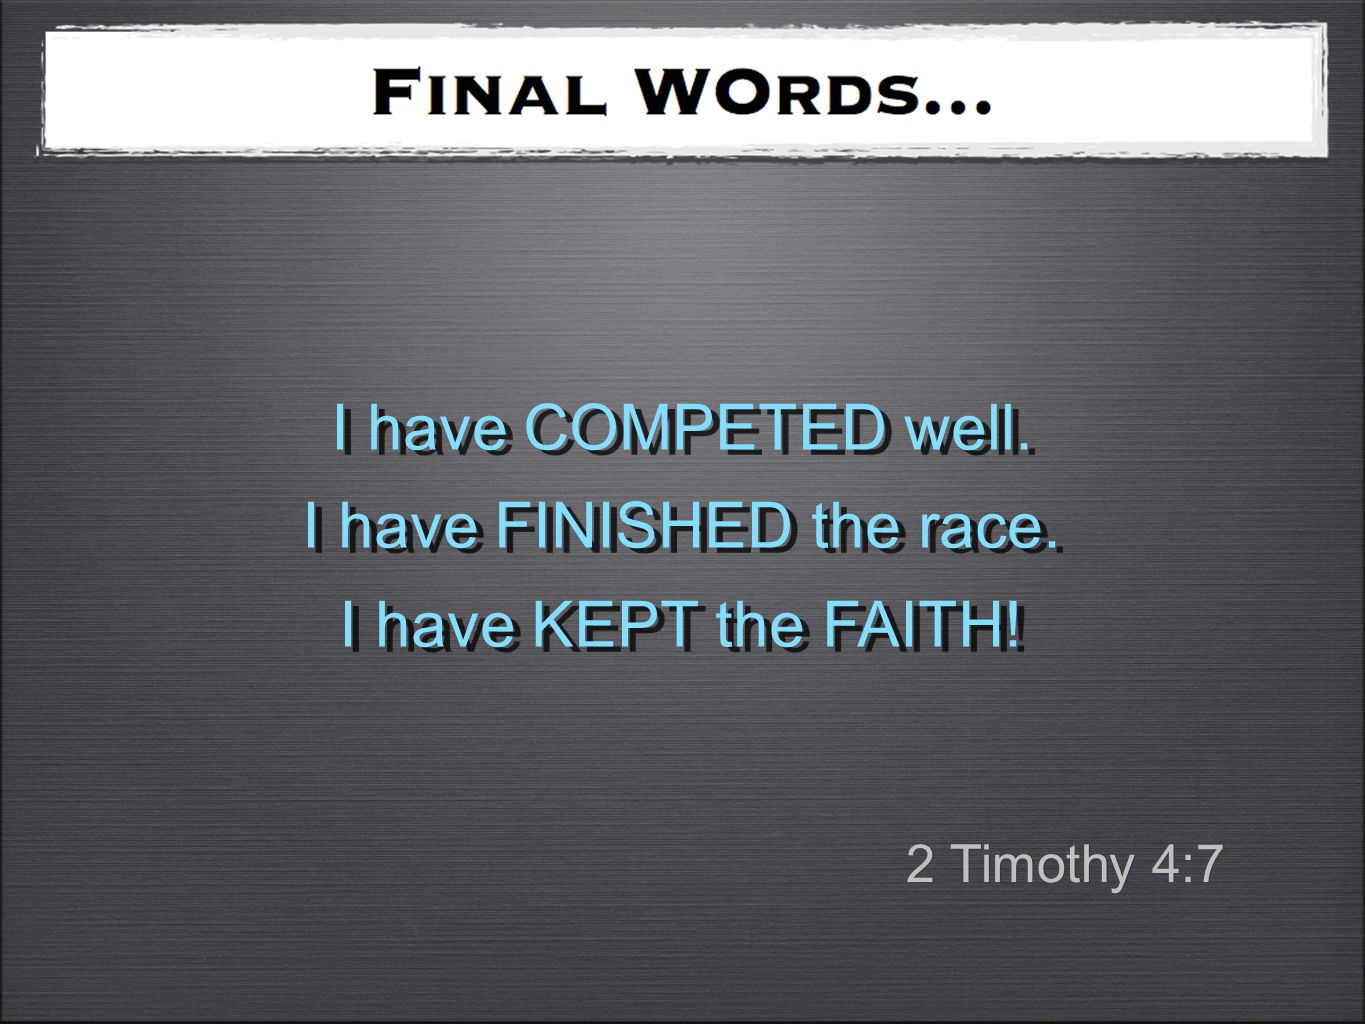 I have COMPETED well. I have FINISHED the race. I have KEPT the FAITH.